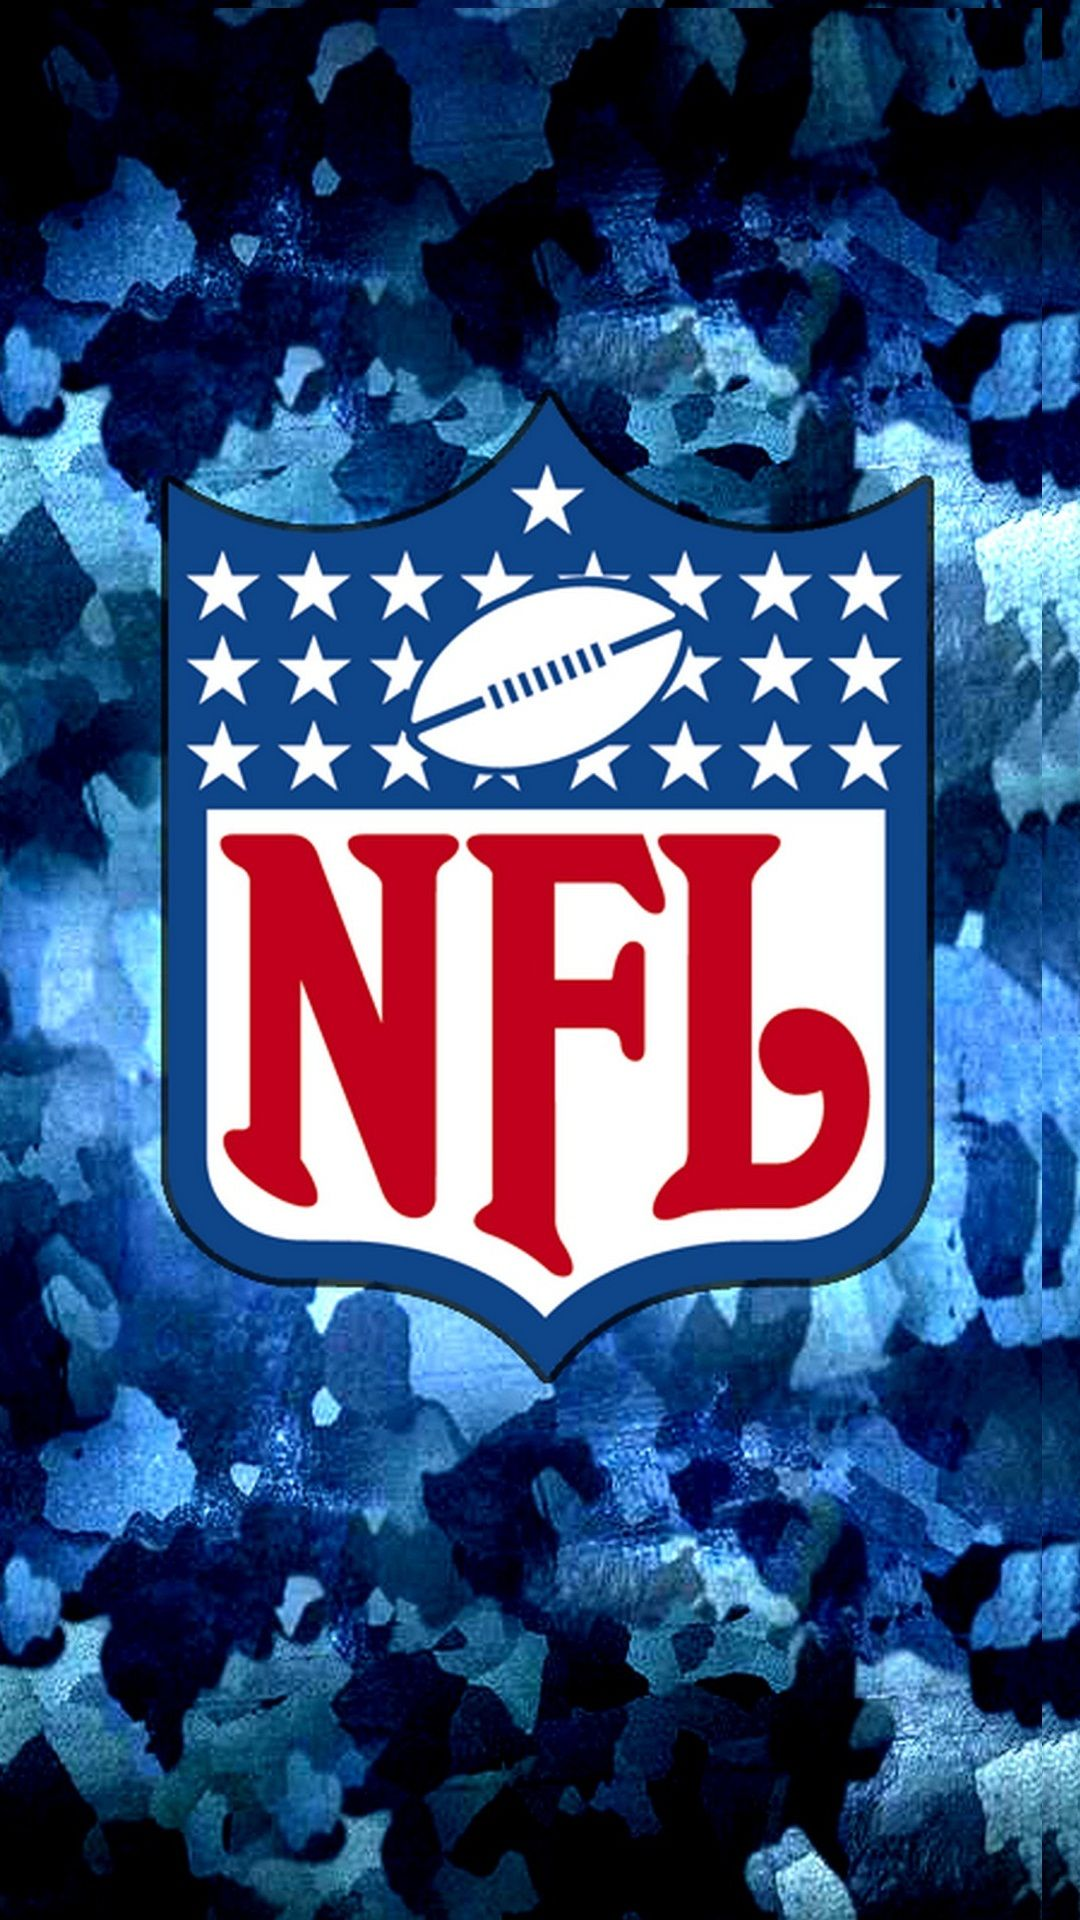 Nfl Wallpapers Football Wallpaper Football Wallpaper Iphone Nfl Football Wallpaper